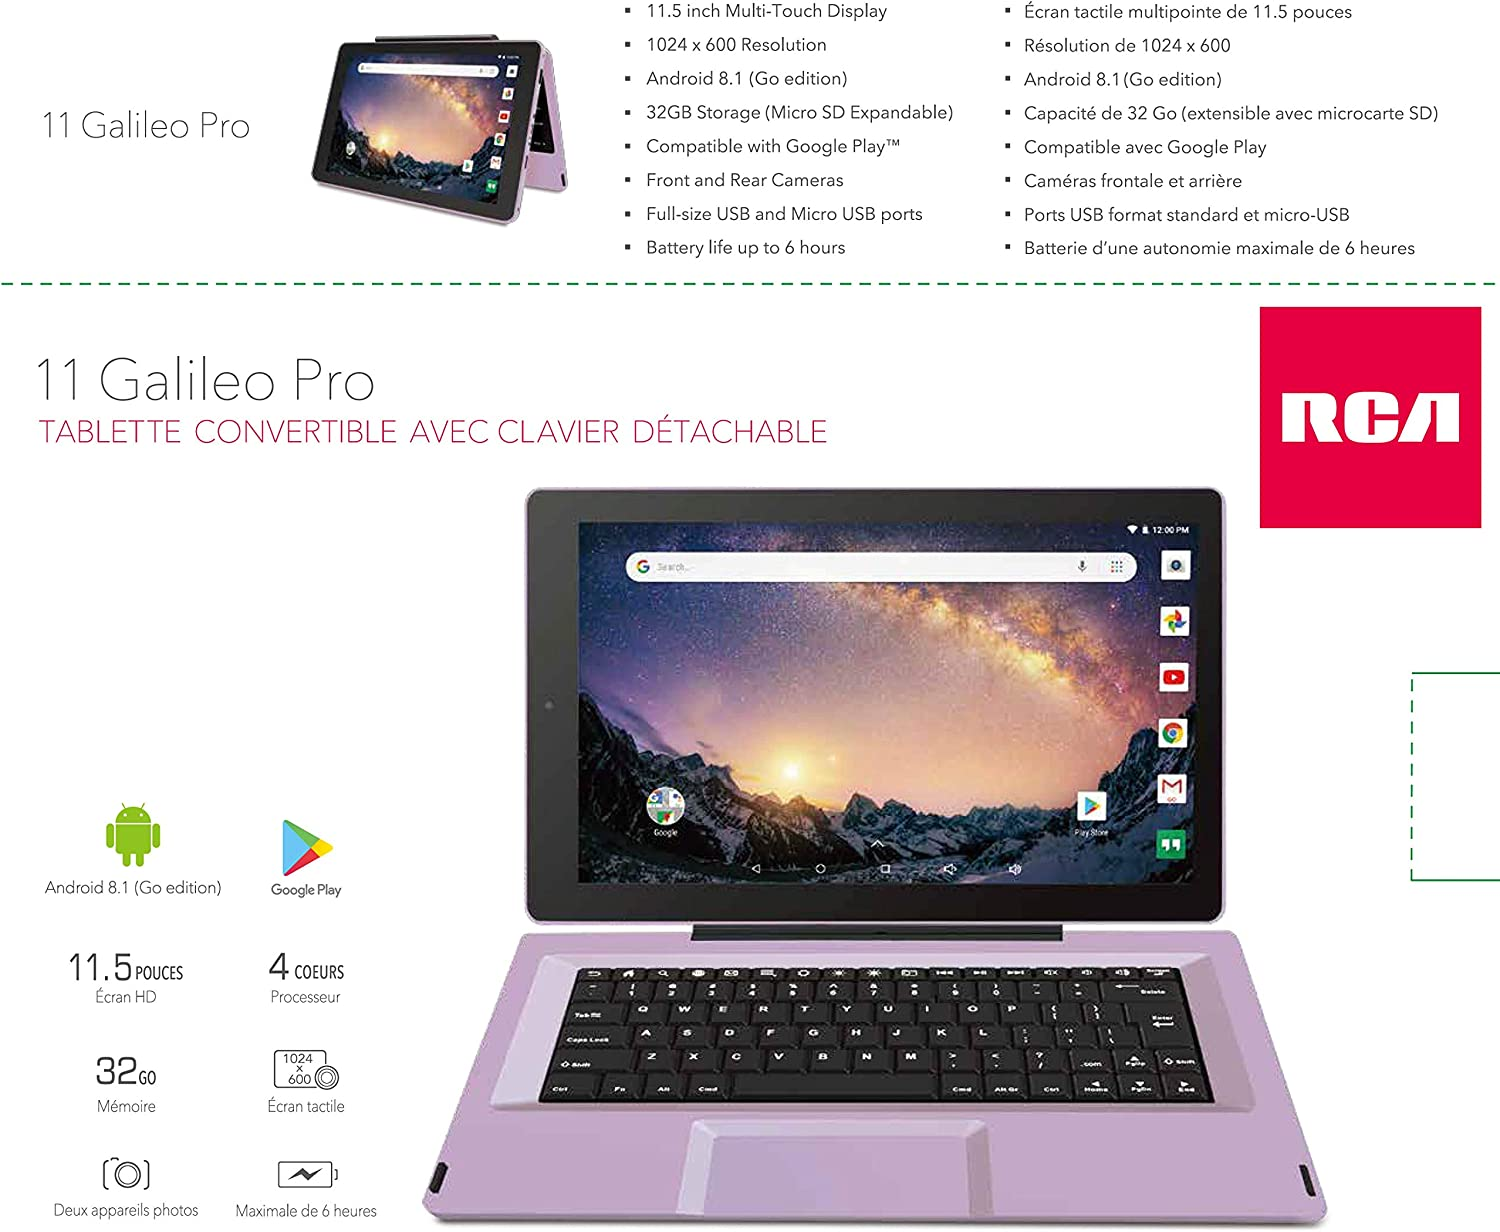 Newest Premium High Performance RCA 2-in-1 Touchscreen Tablet Quad-Core Processor 1G RAM 32GB Hard Drive Detachable-Keyboard Android 8.1 11.5, Lavender Go Edition